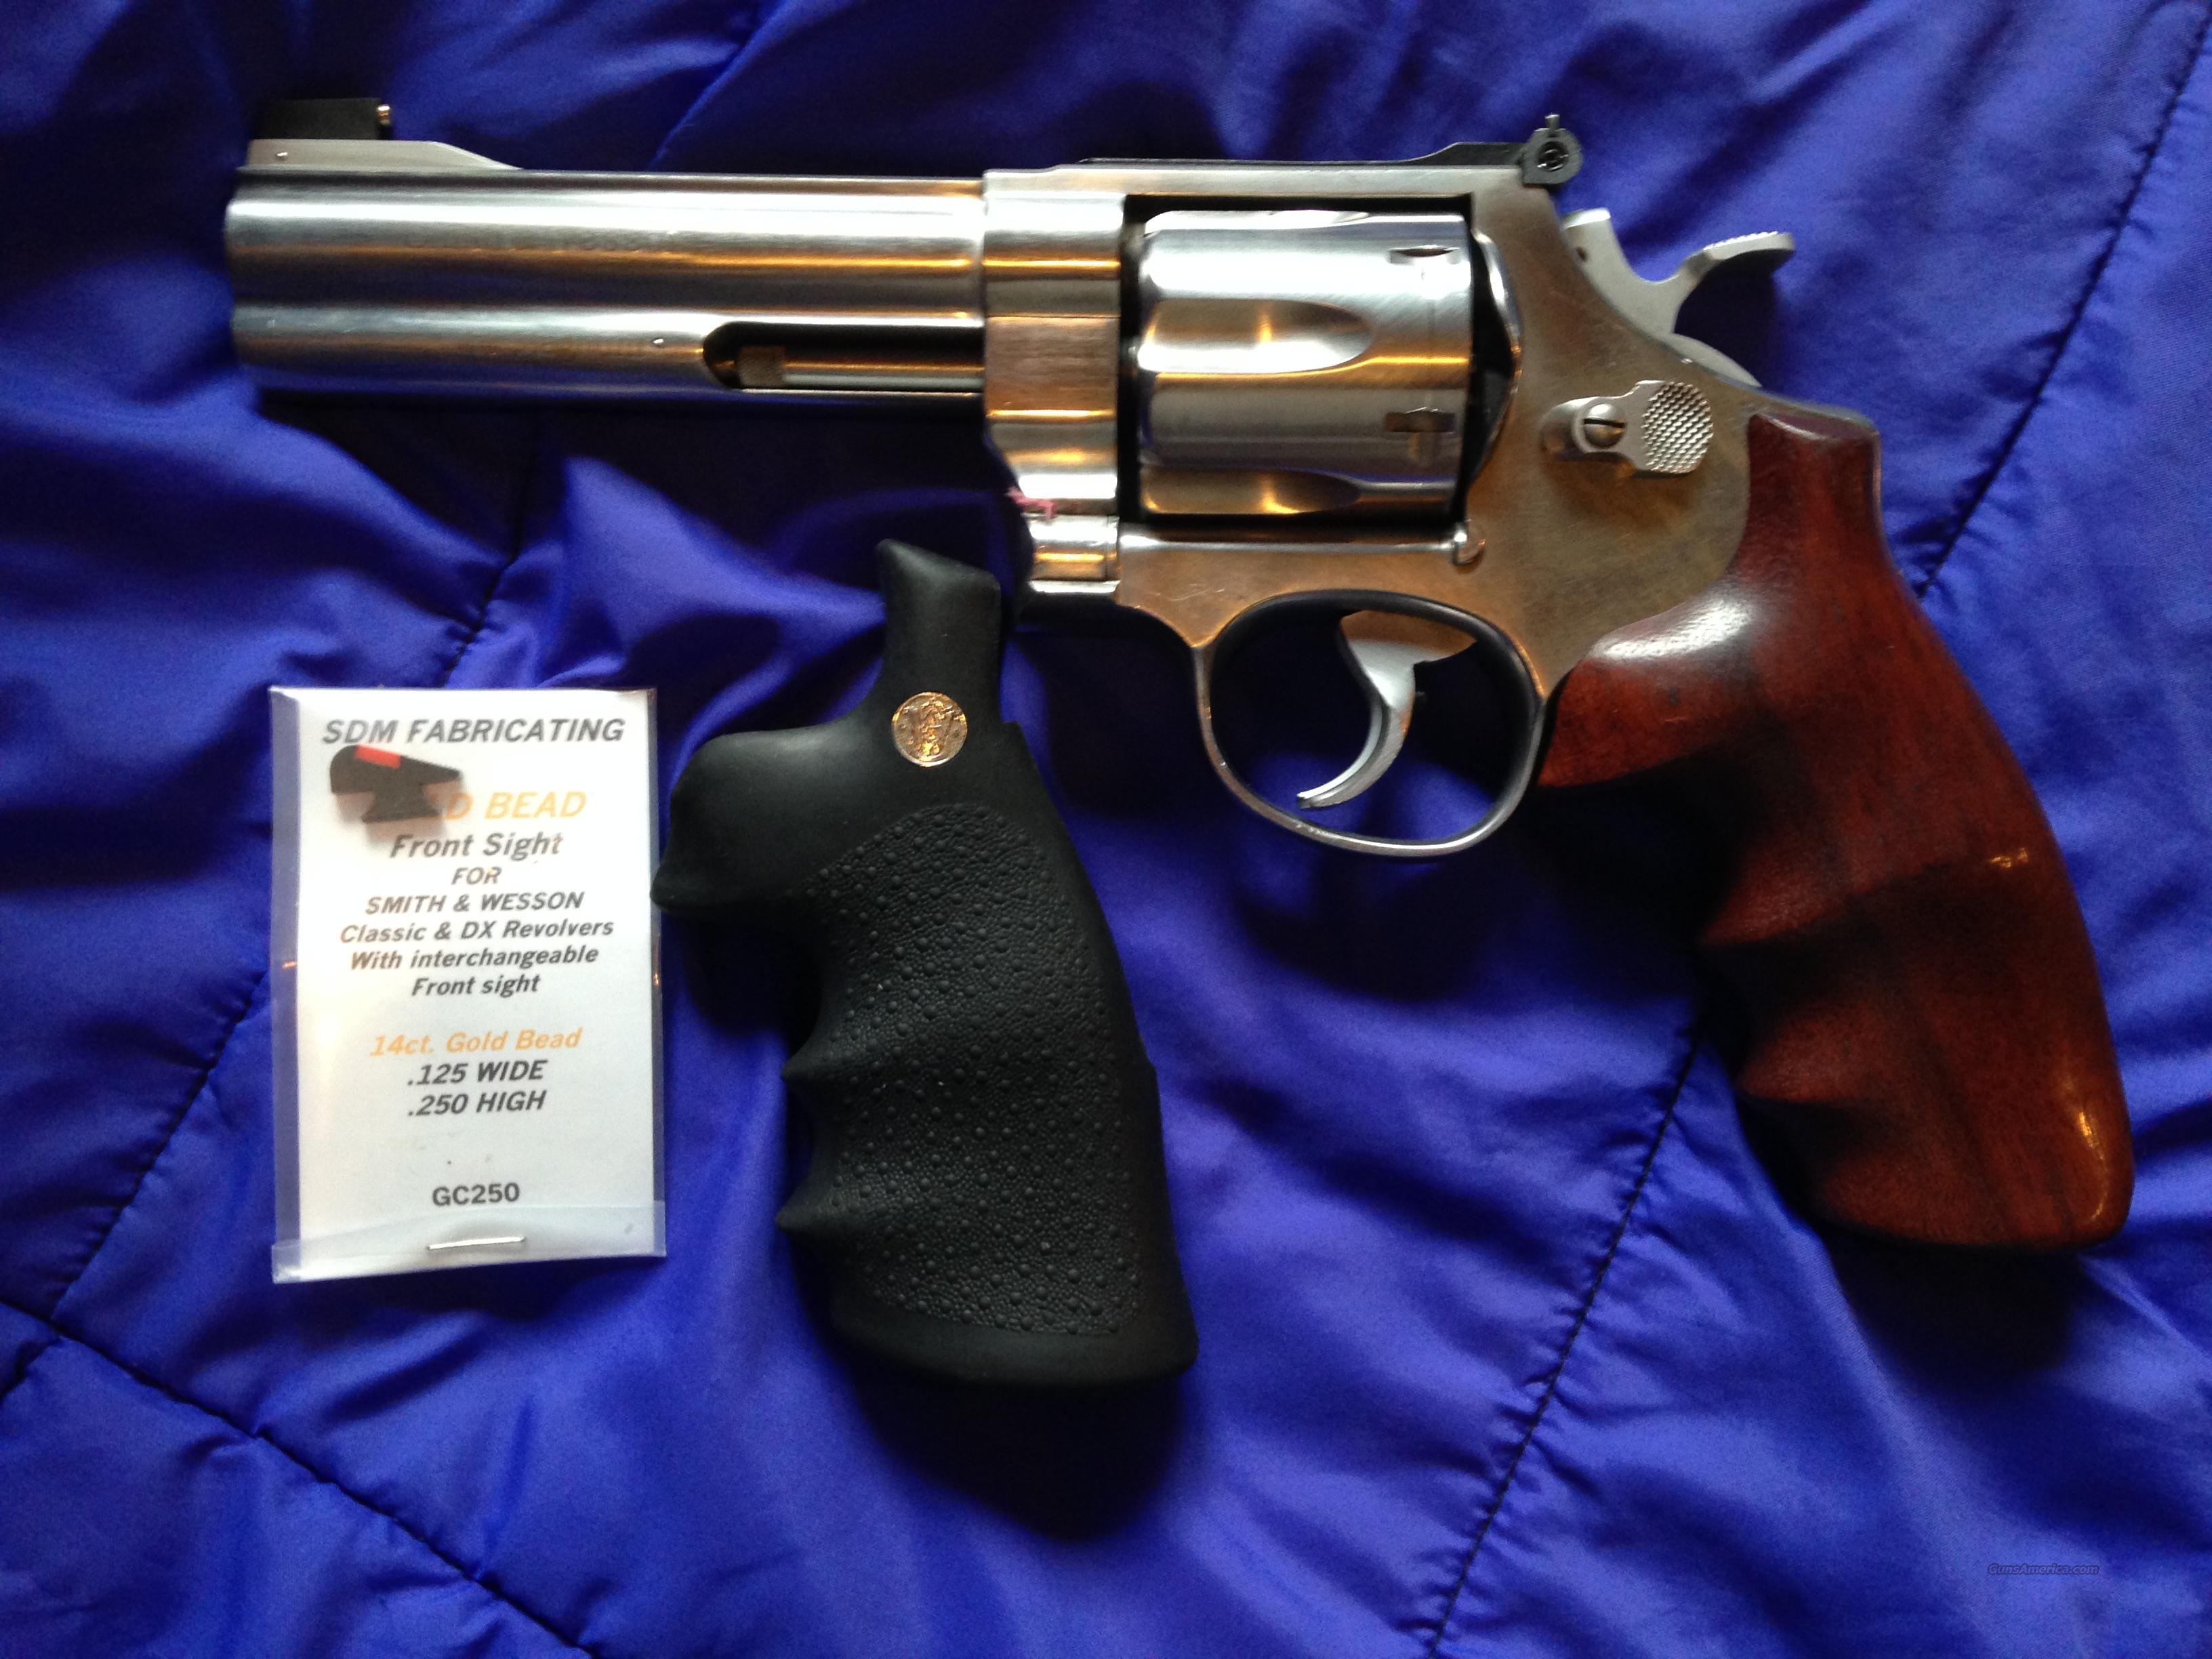 Smith & Wesson Model 629-3 Classic stainless 5-inch 44 Magnum